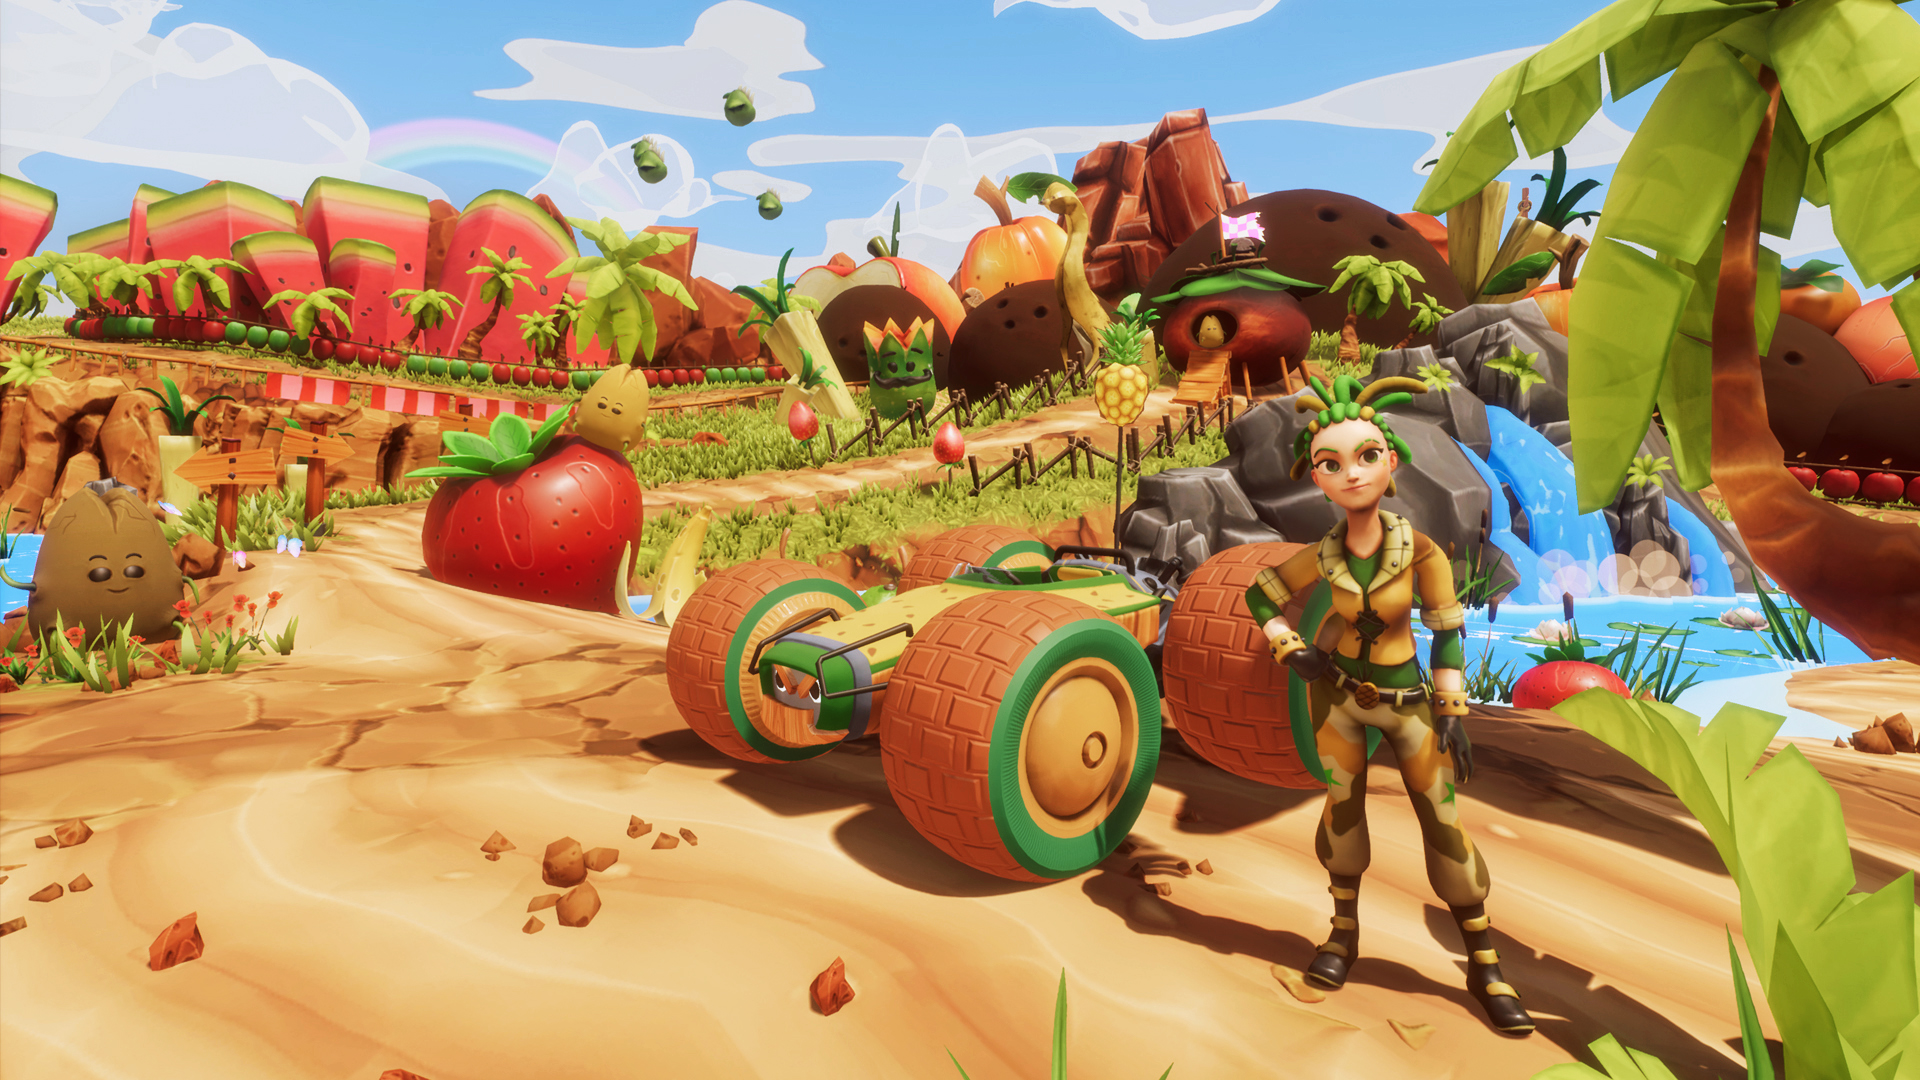 a5255b4c614b All-Star Fruit Racing is the kart racing game you ve been waiting for!  Graphically stunning and incredible fun with a strategic twist that will  keep you ...